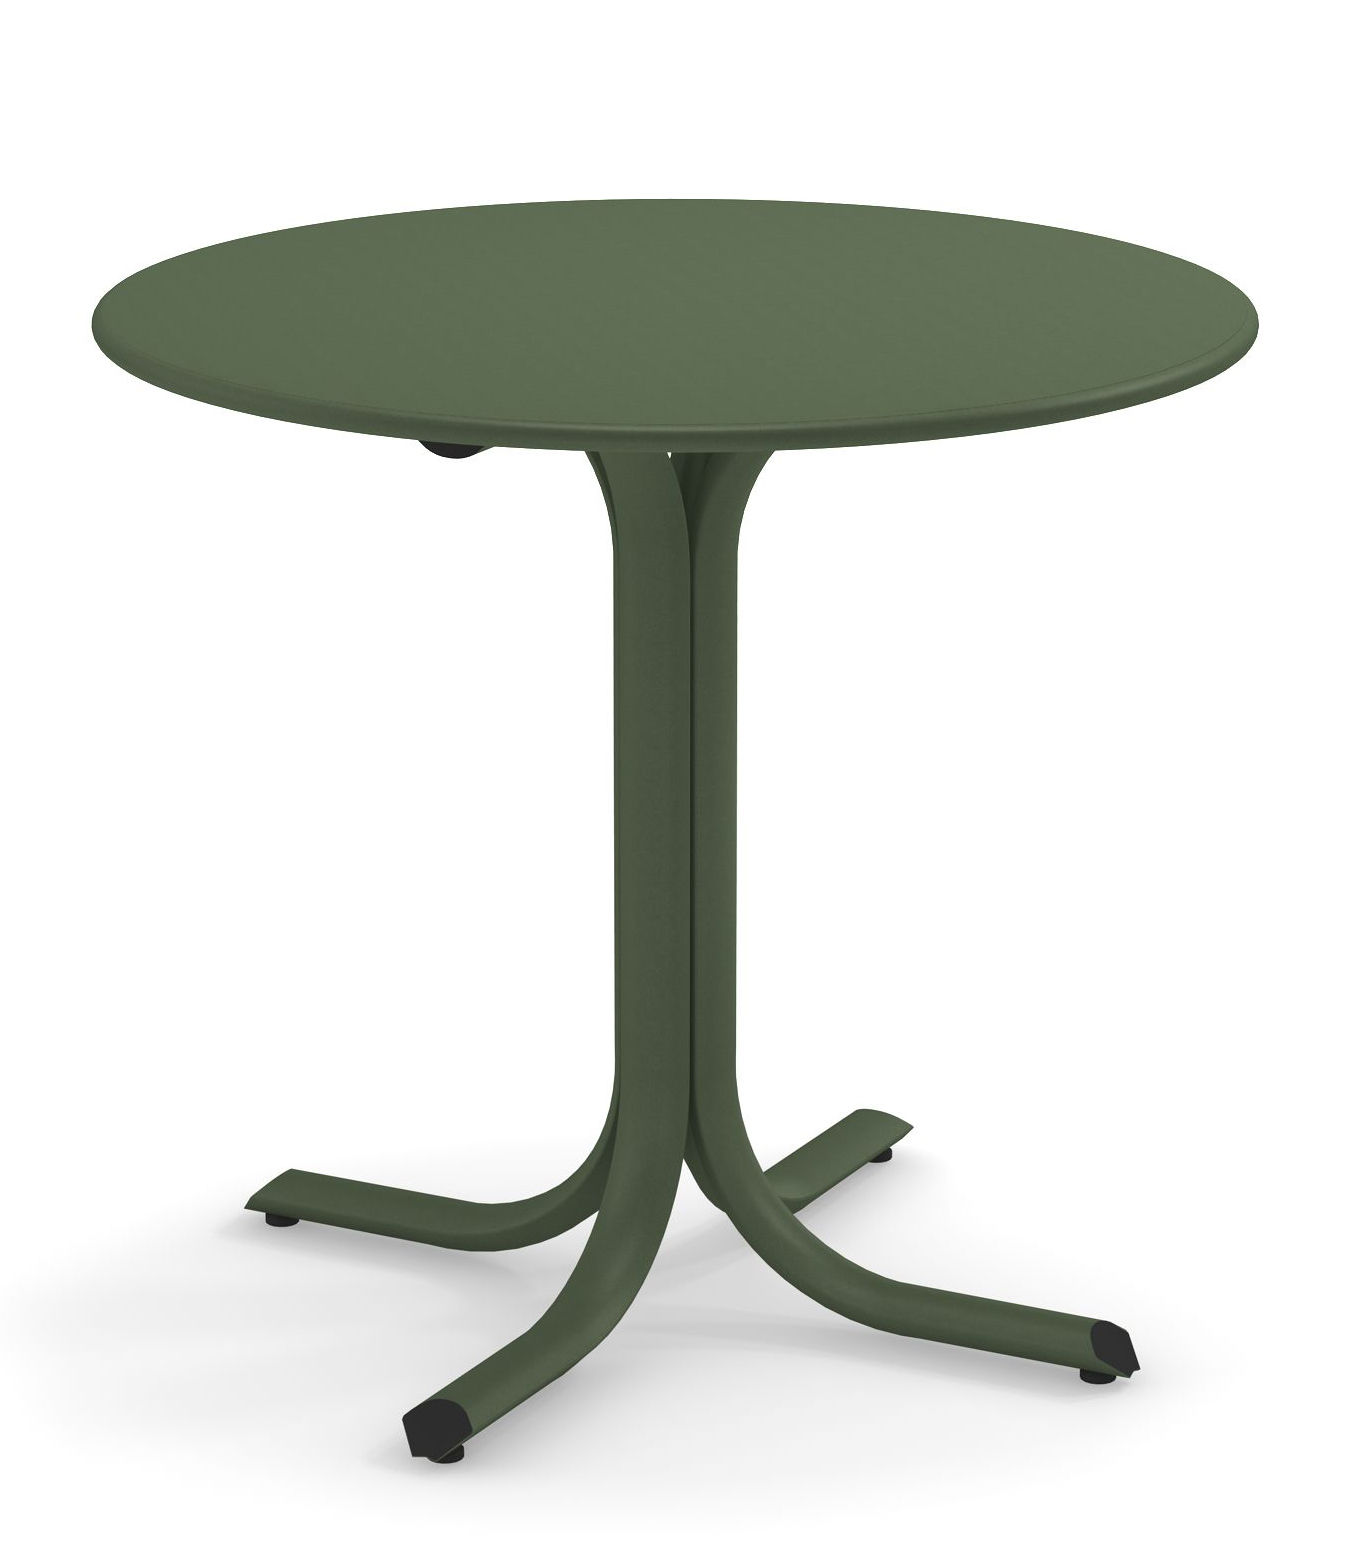 Table Ronde 80 Cm Table Ronde System Ø 80 Cm Emu